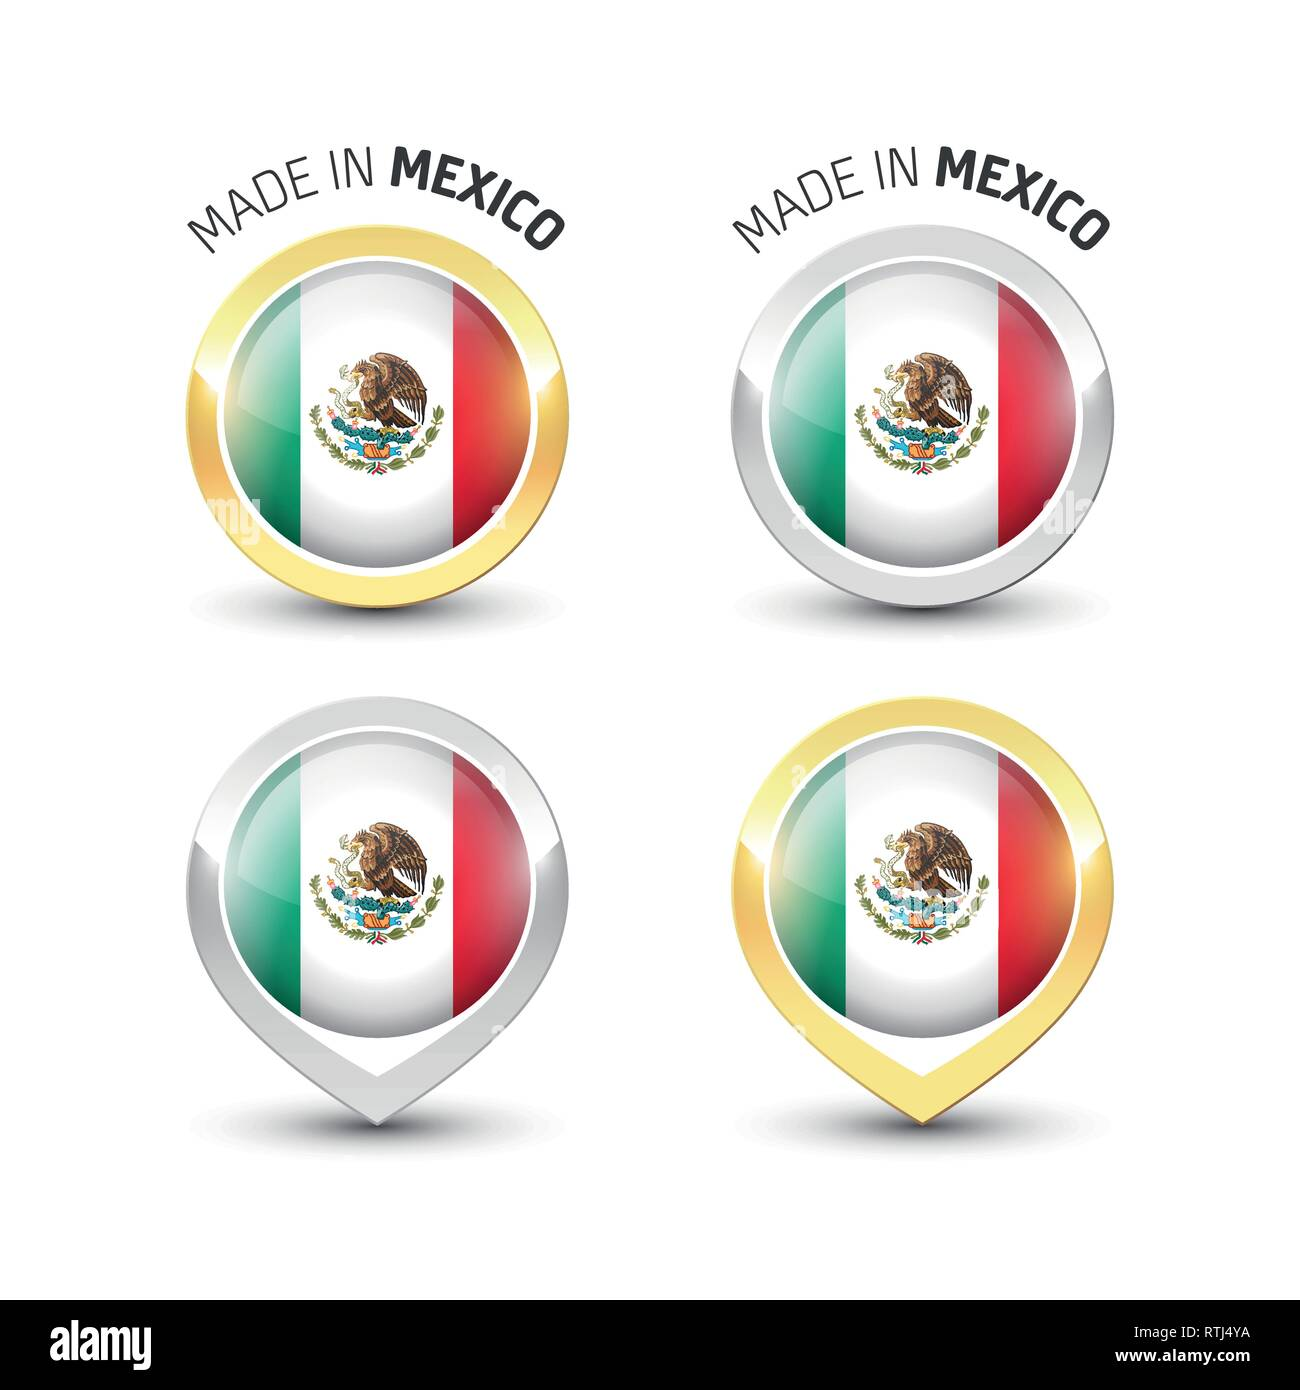 Made in Mexico - Guarantee label with the Mexican flag inside round gold and silver icons. - Stock Image